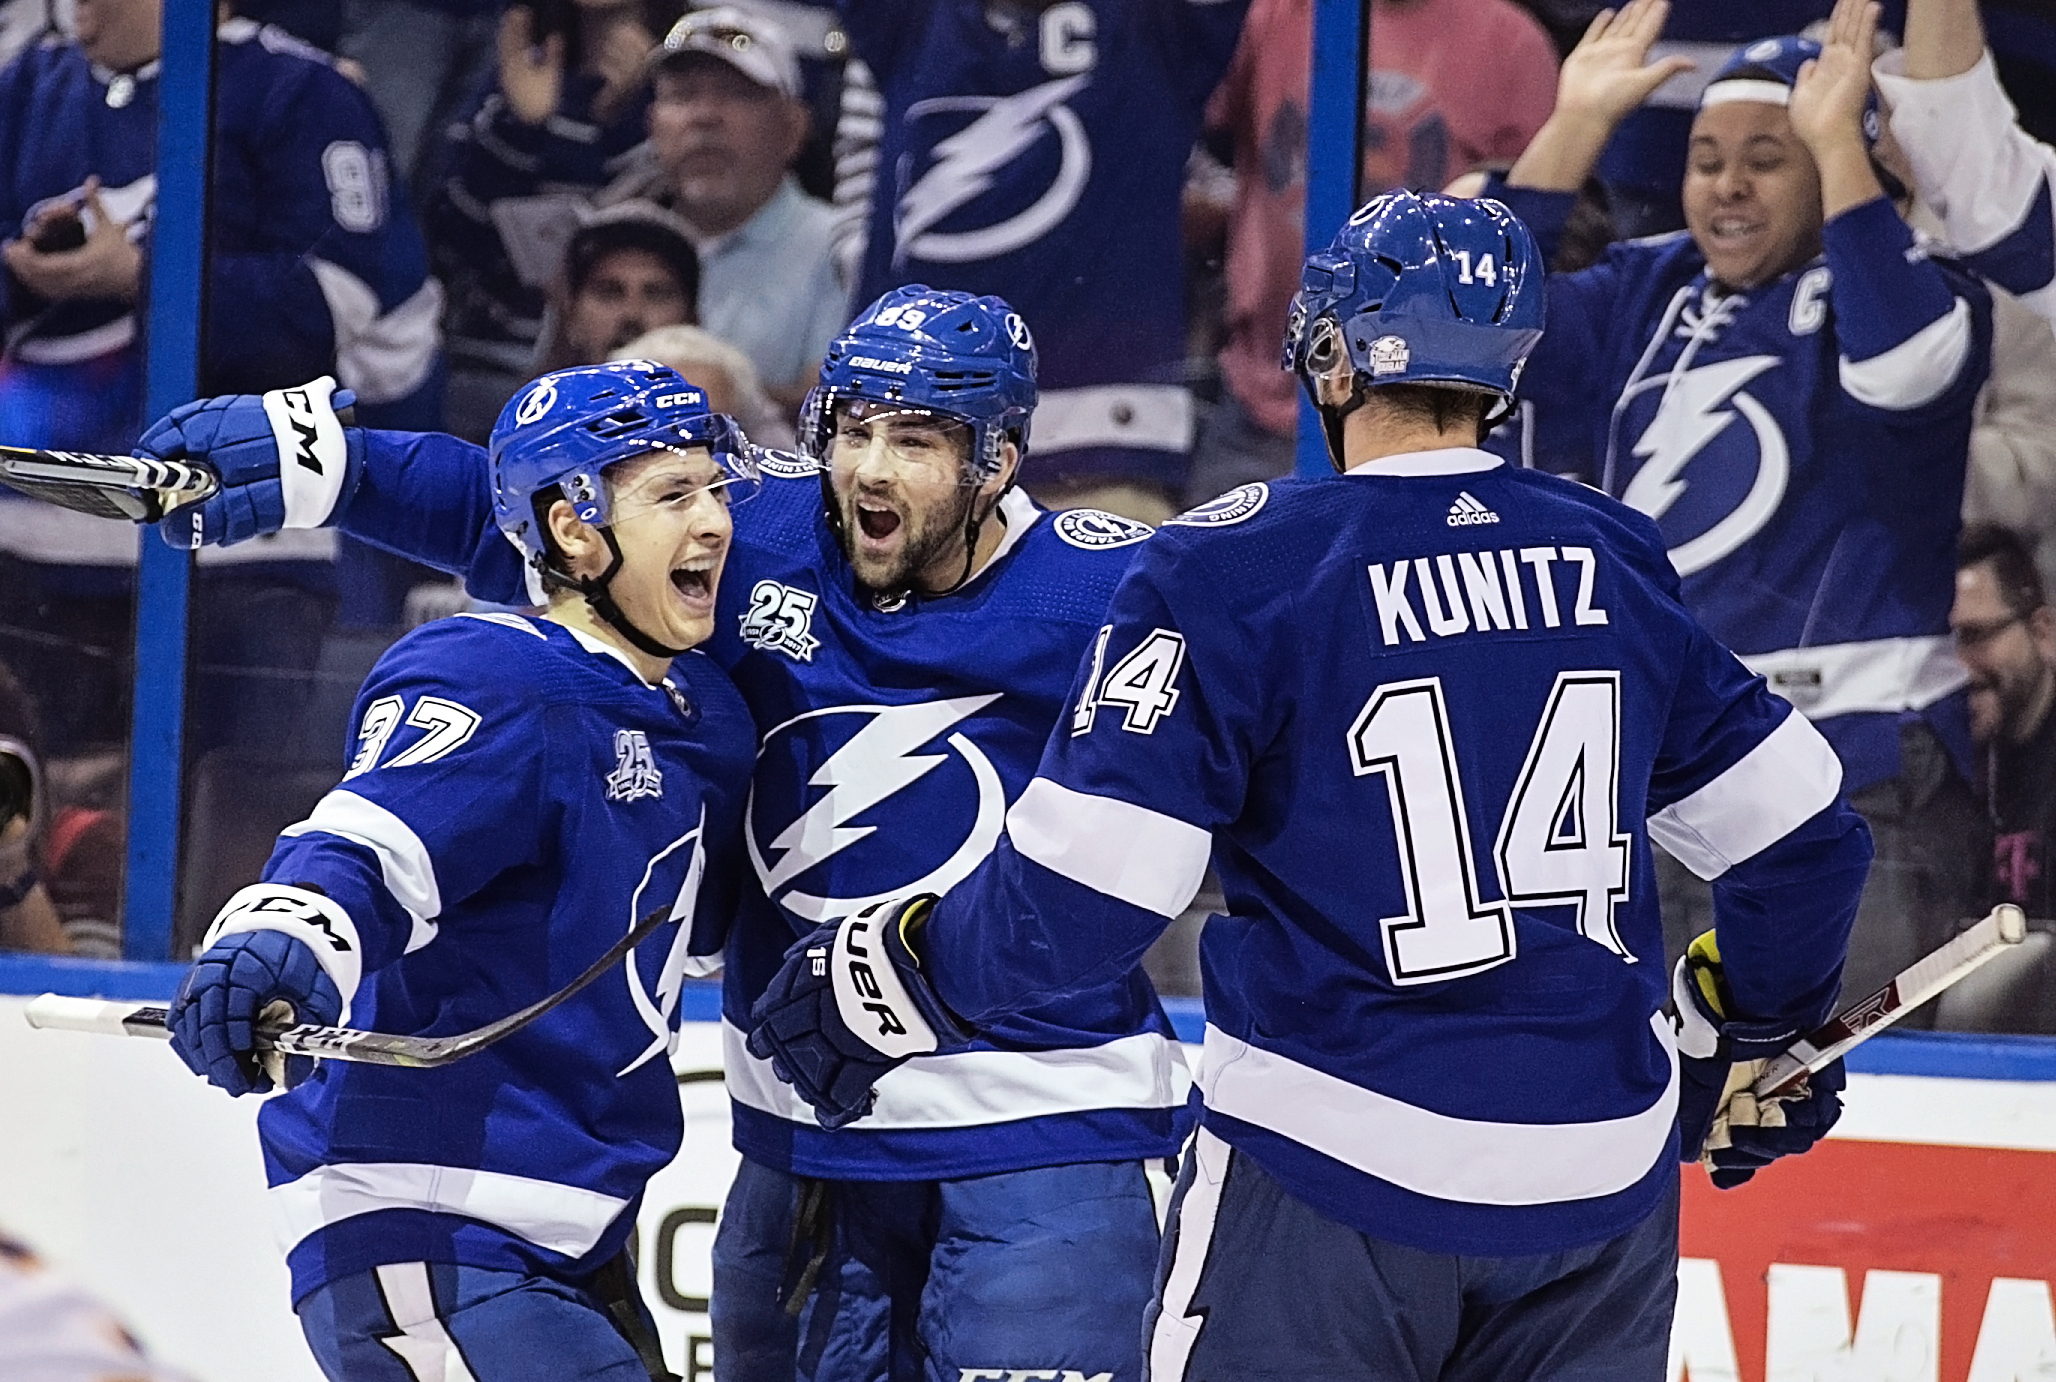 Conacher scored the game-winner in overtime./CARMEN MANDATO